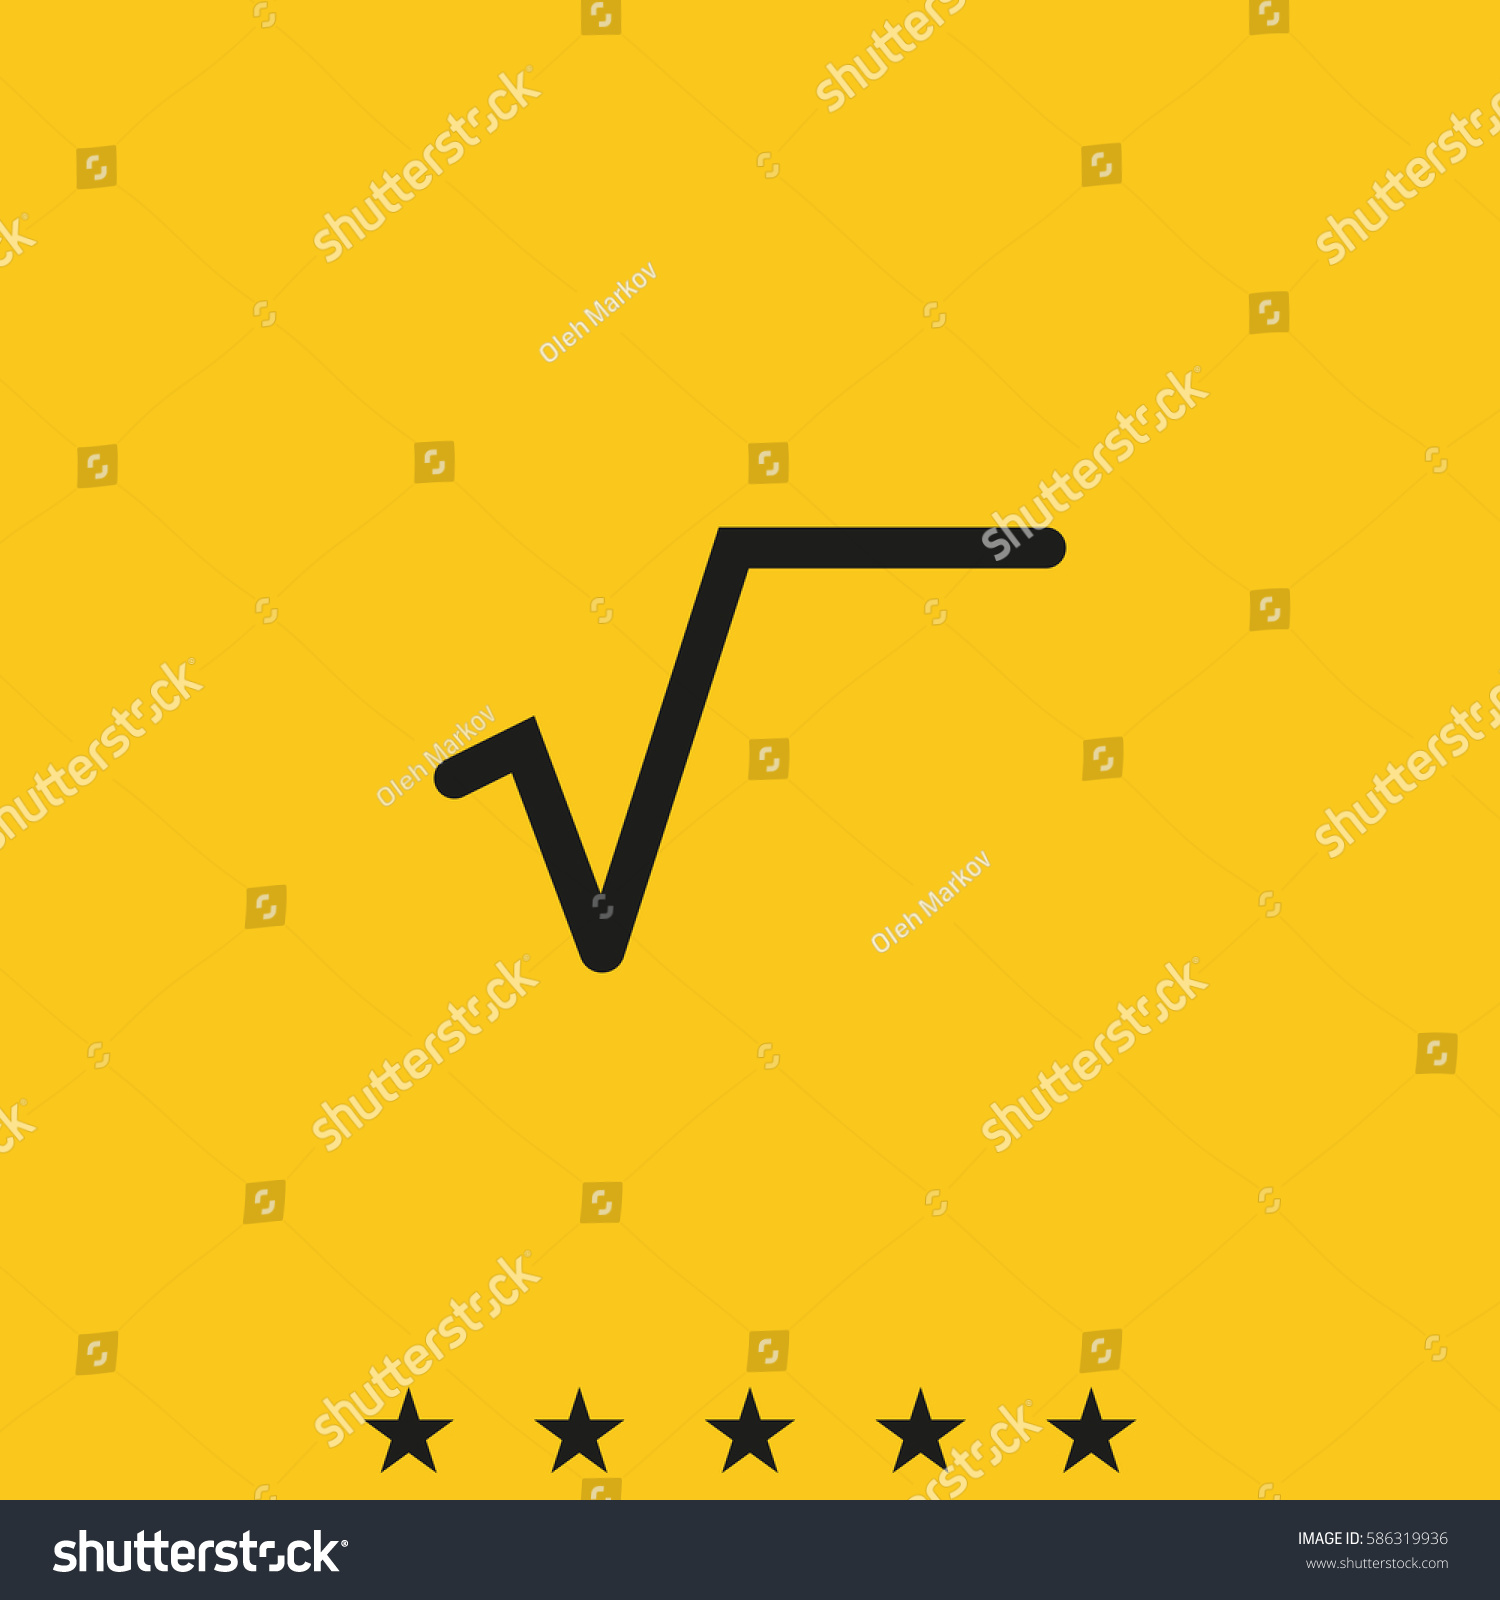 Square root symbol flat icon stock illustration 586319936 shutterstock square root symbol flat icon buycottarizona Images